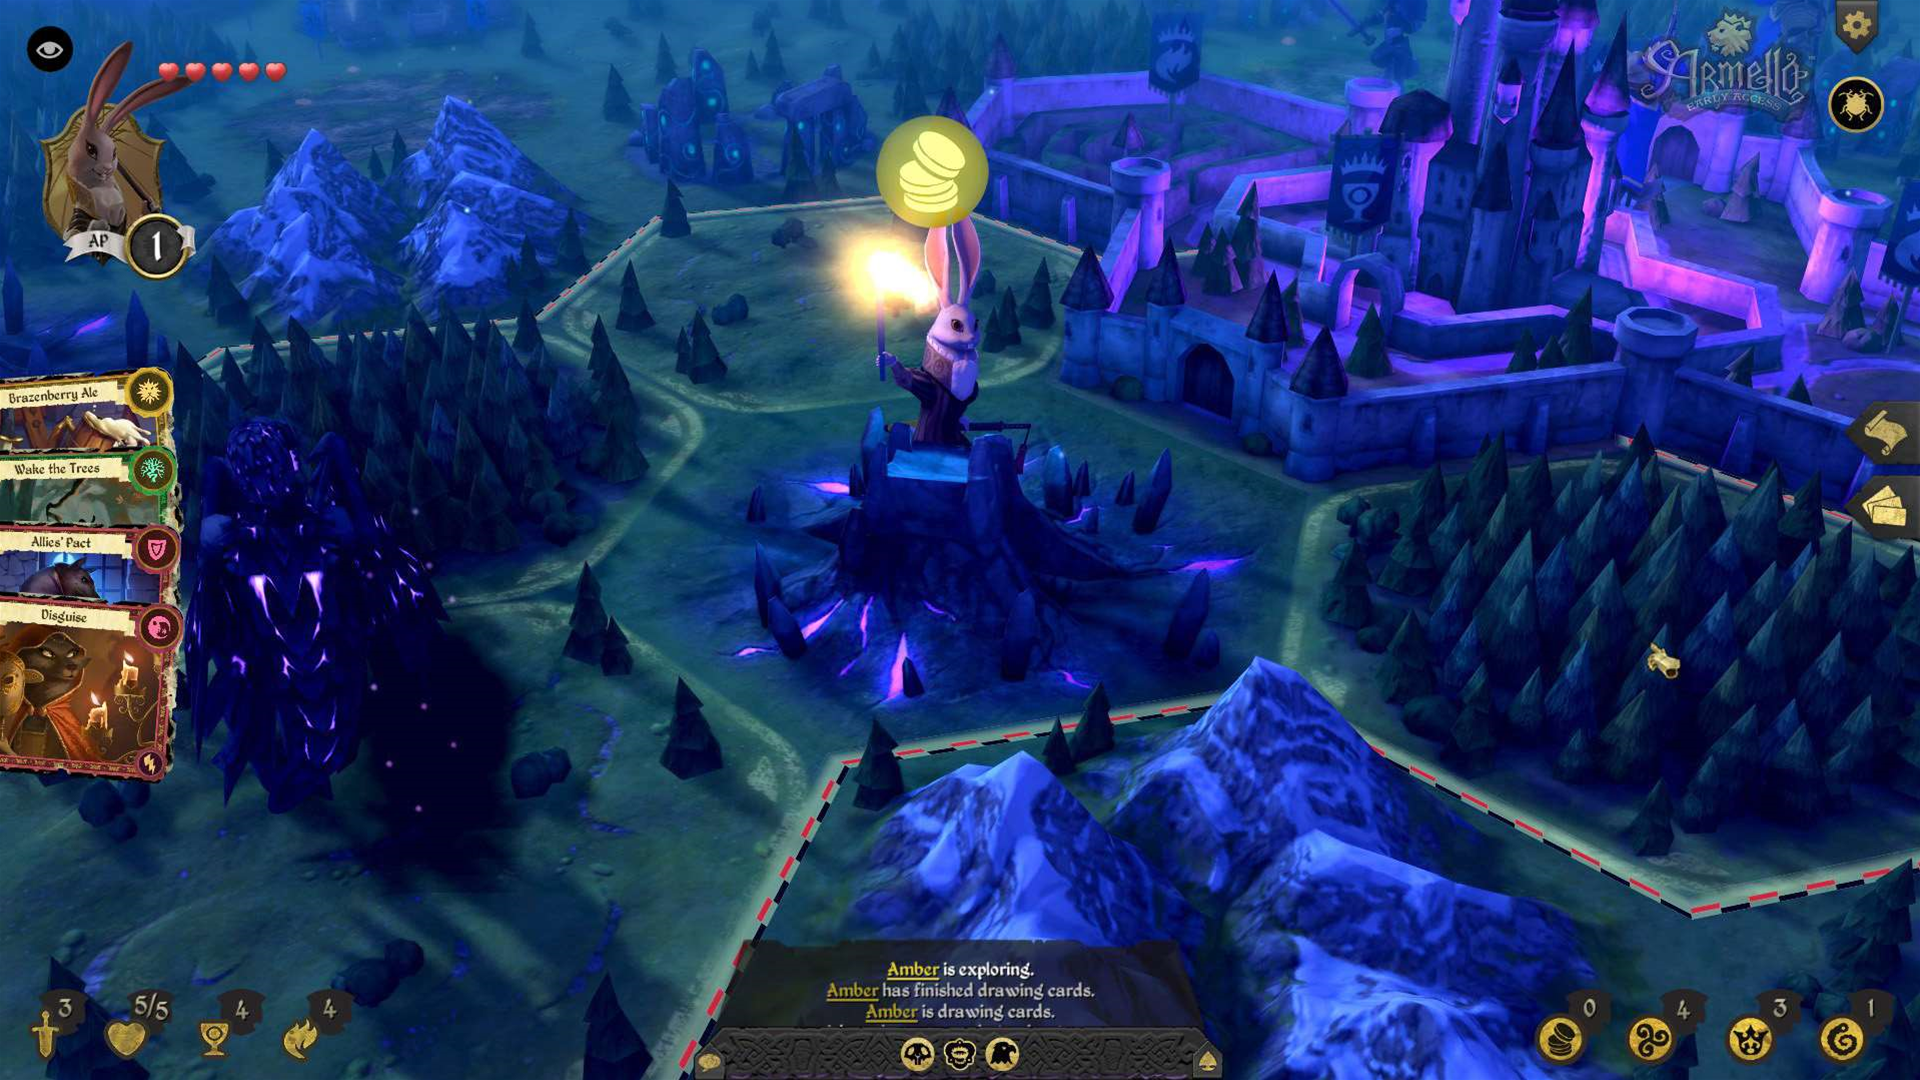 Australian game Armello gets release date, new characters